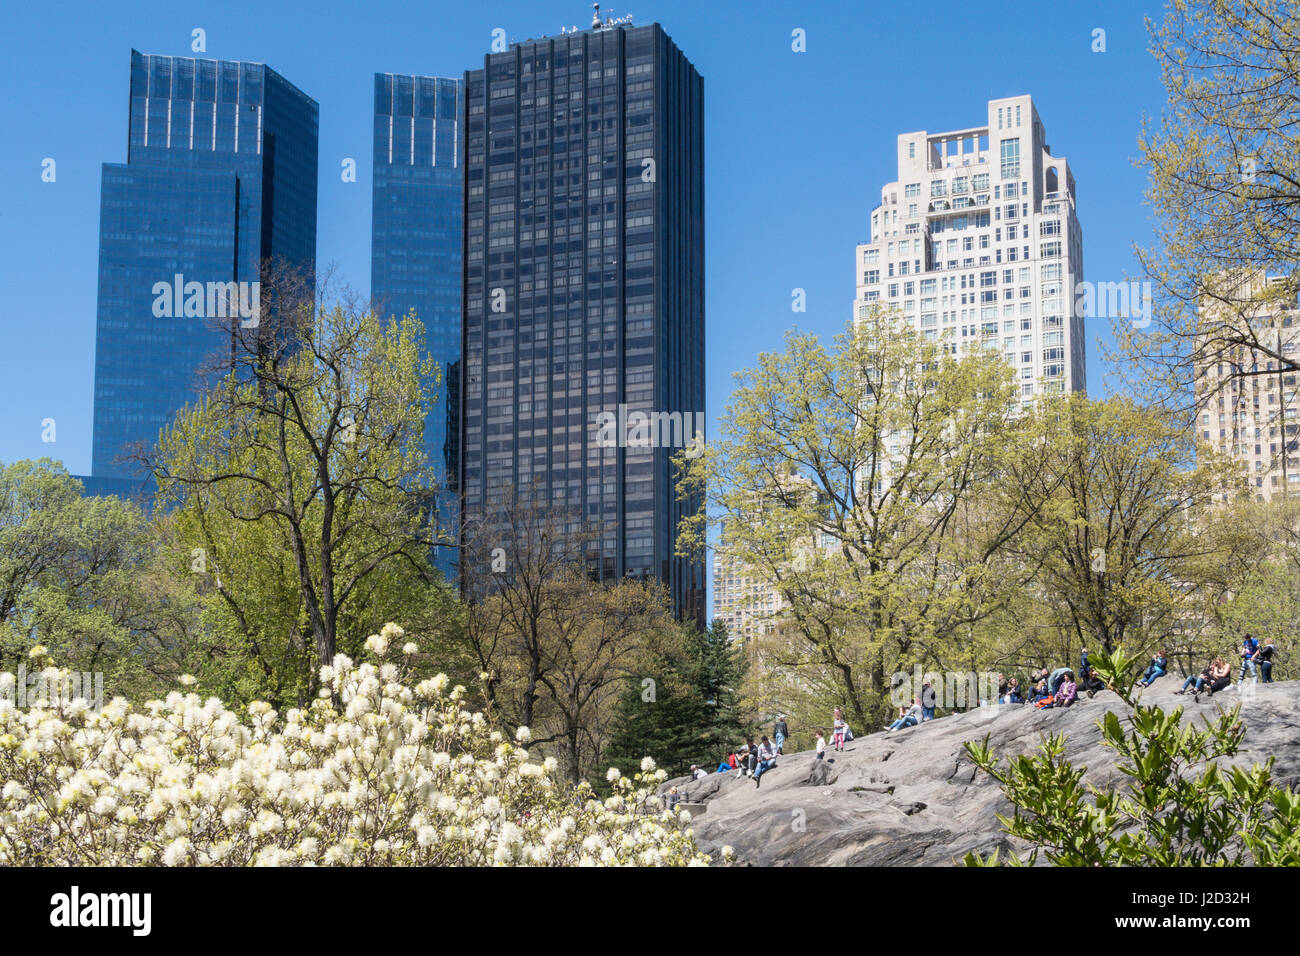 Towers Along Central Park West behind Rat Rock,C entral Park in Springtime, New York City, USA - Stock Image